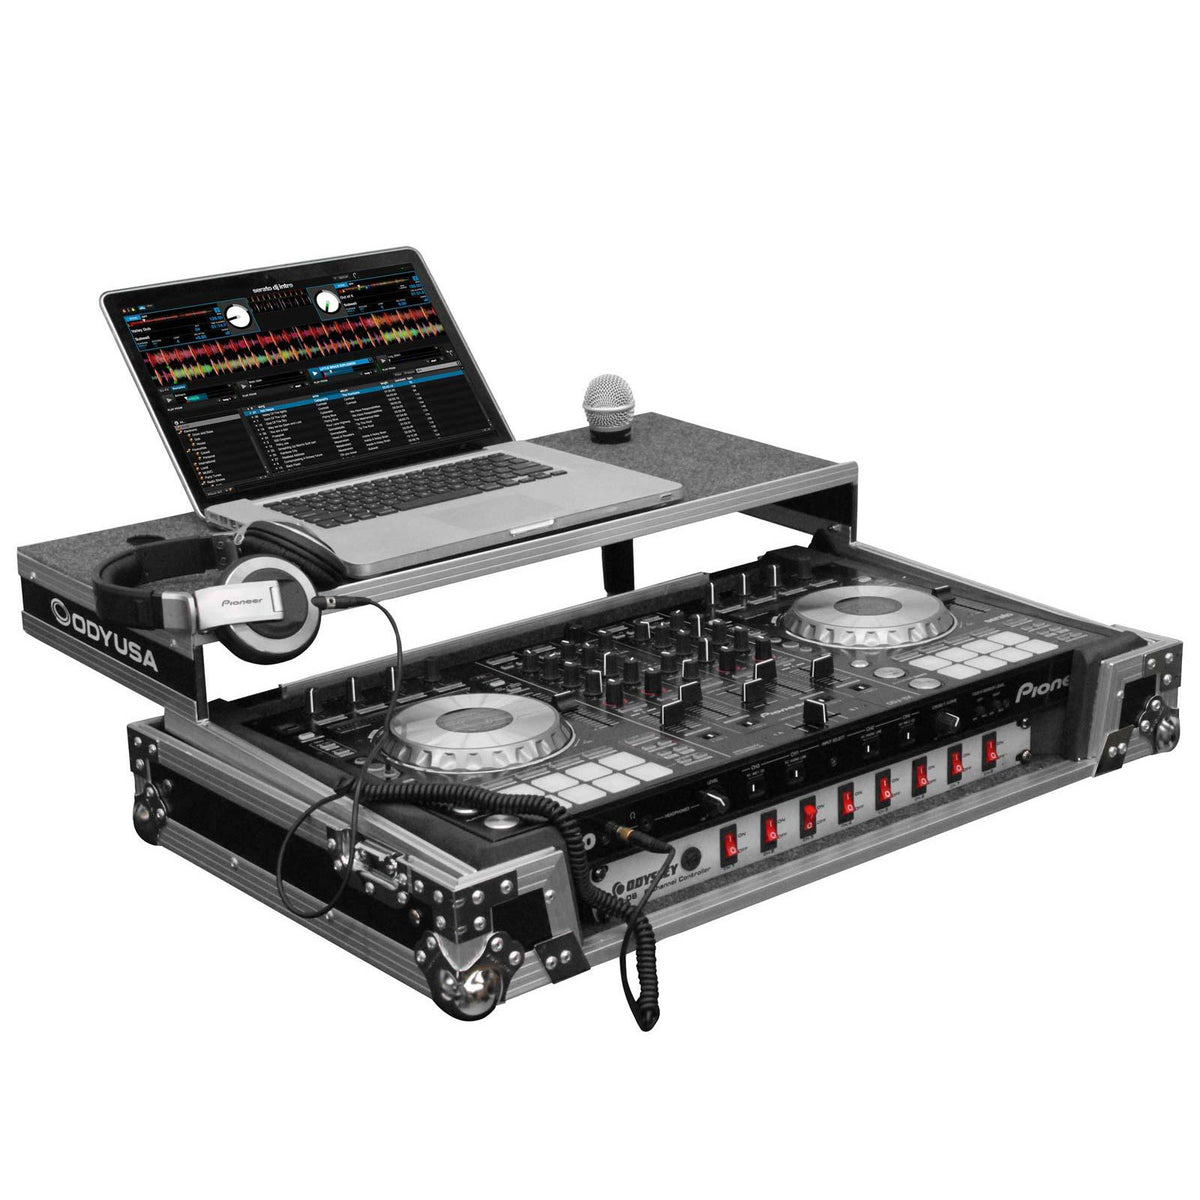 Odyssey: Flight Zone Glide Style Case For Pioneer DDJ-SX2 (FZGSPIDDJSX2)